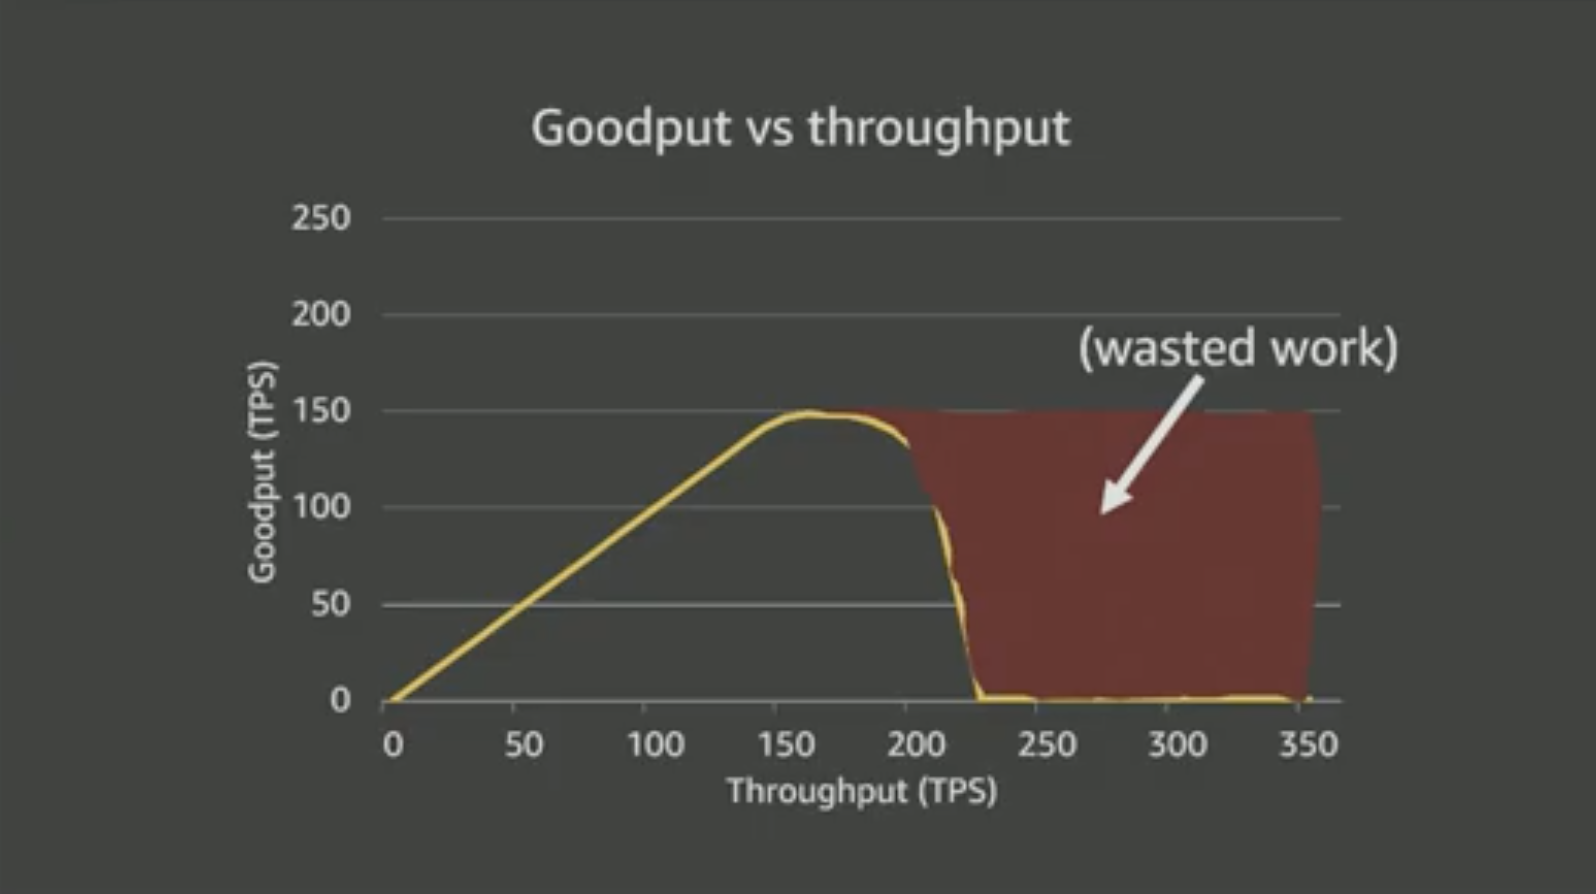 goodput-waste